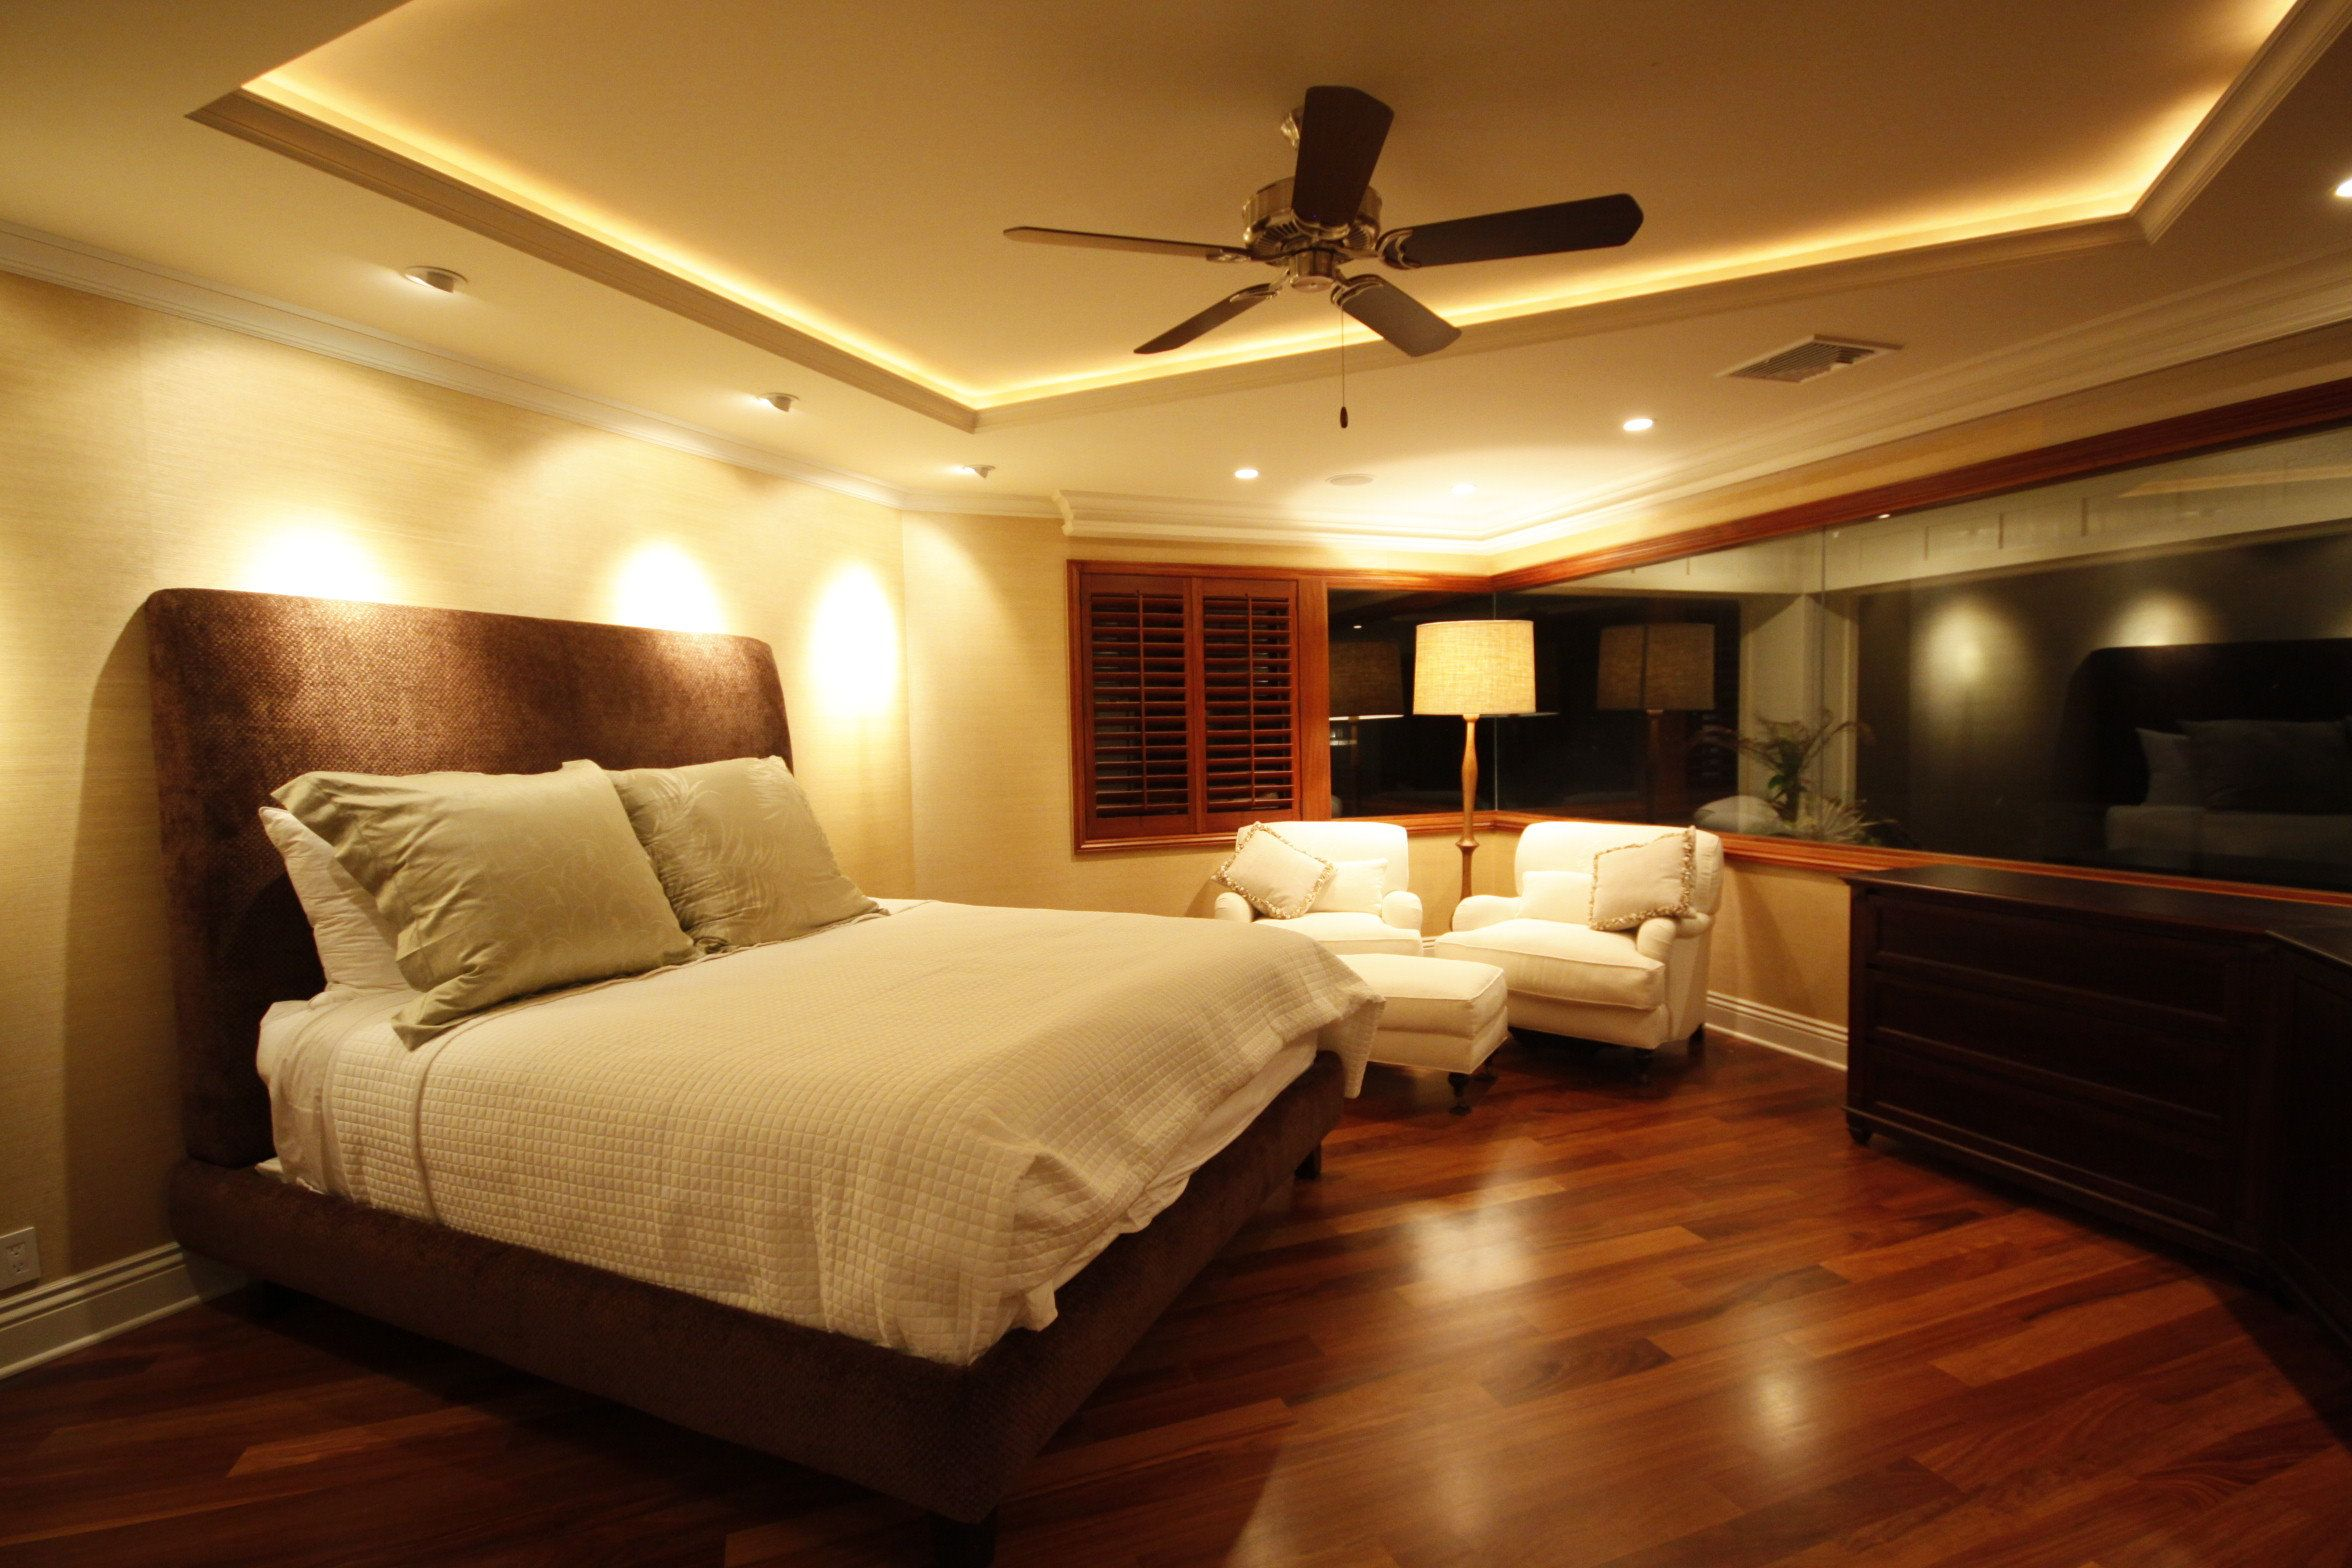 Appealing master bedroom modern decor with wooden floors also luxury master bed also sweet pair - Master bedroom design plans ideas ...